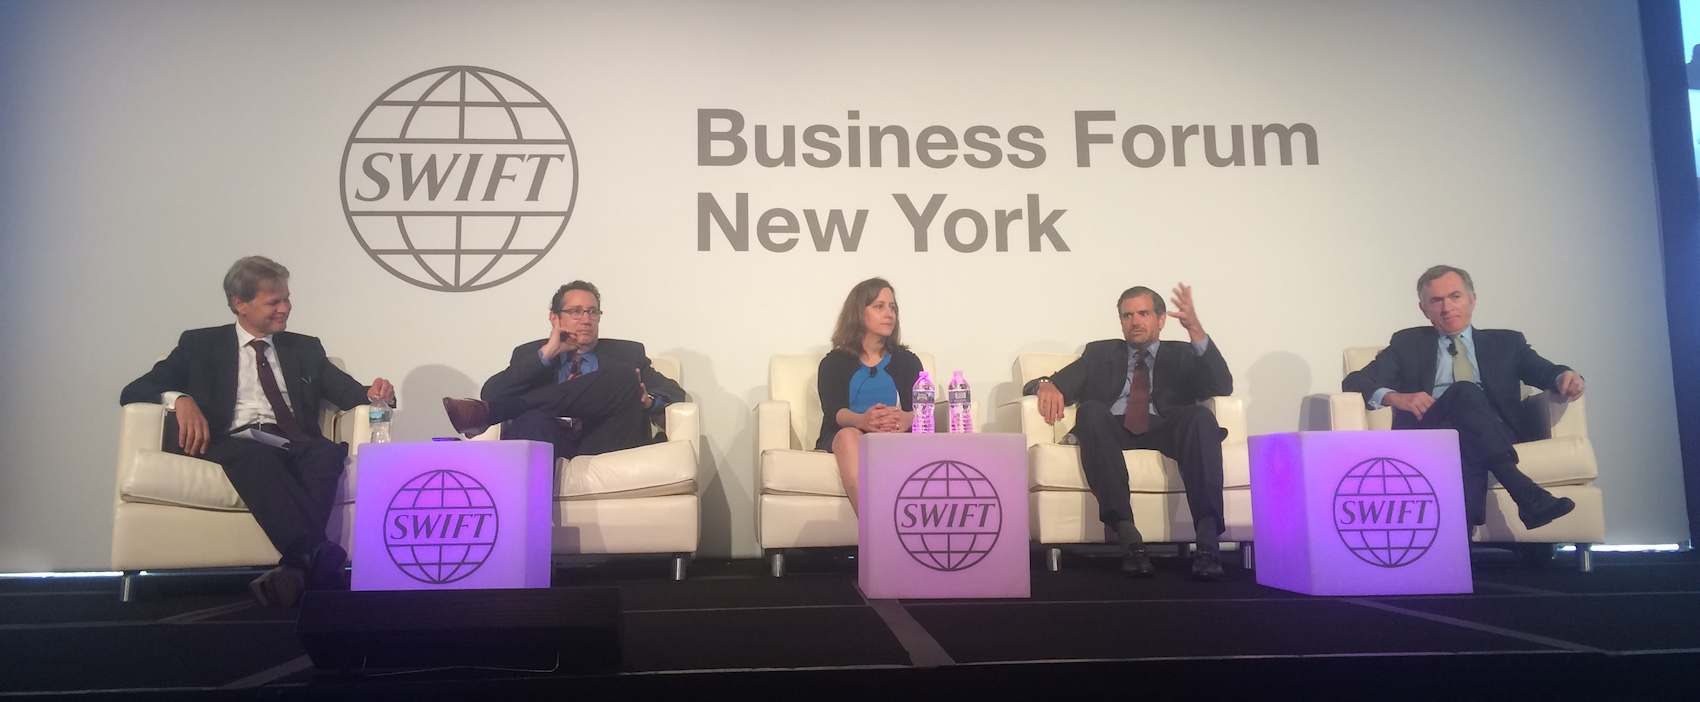 Swift Business Forum, 2017